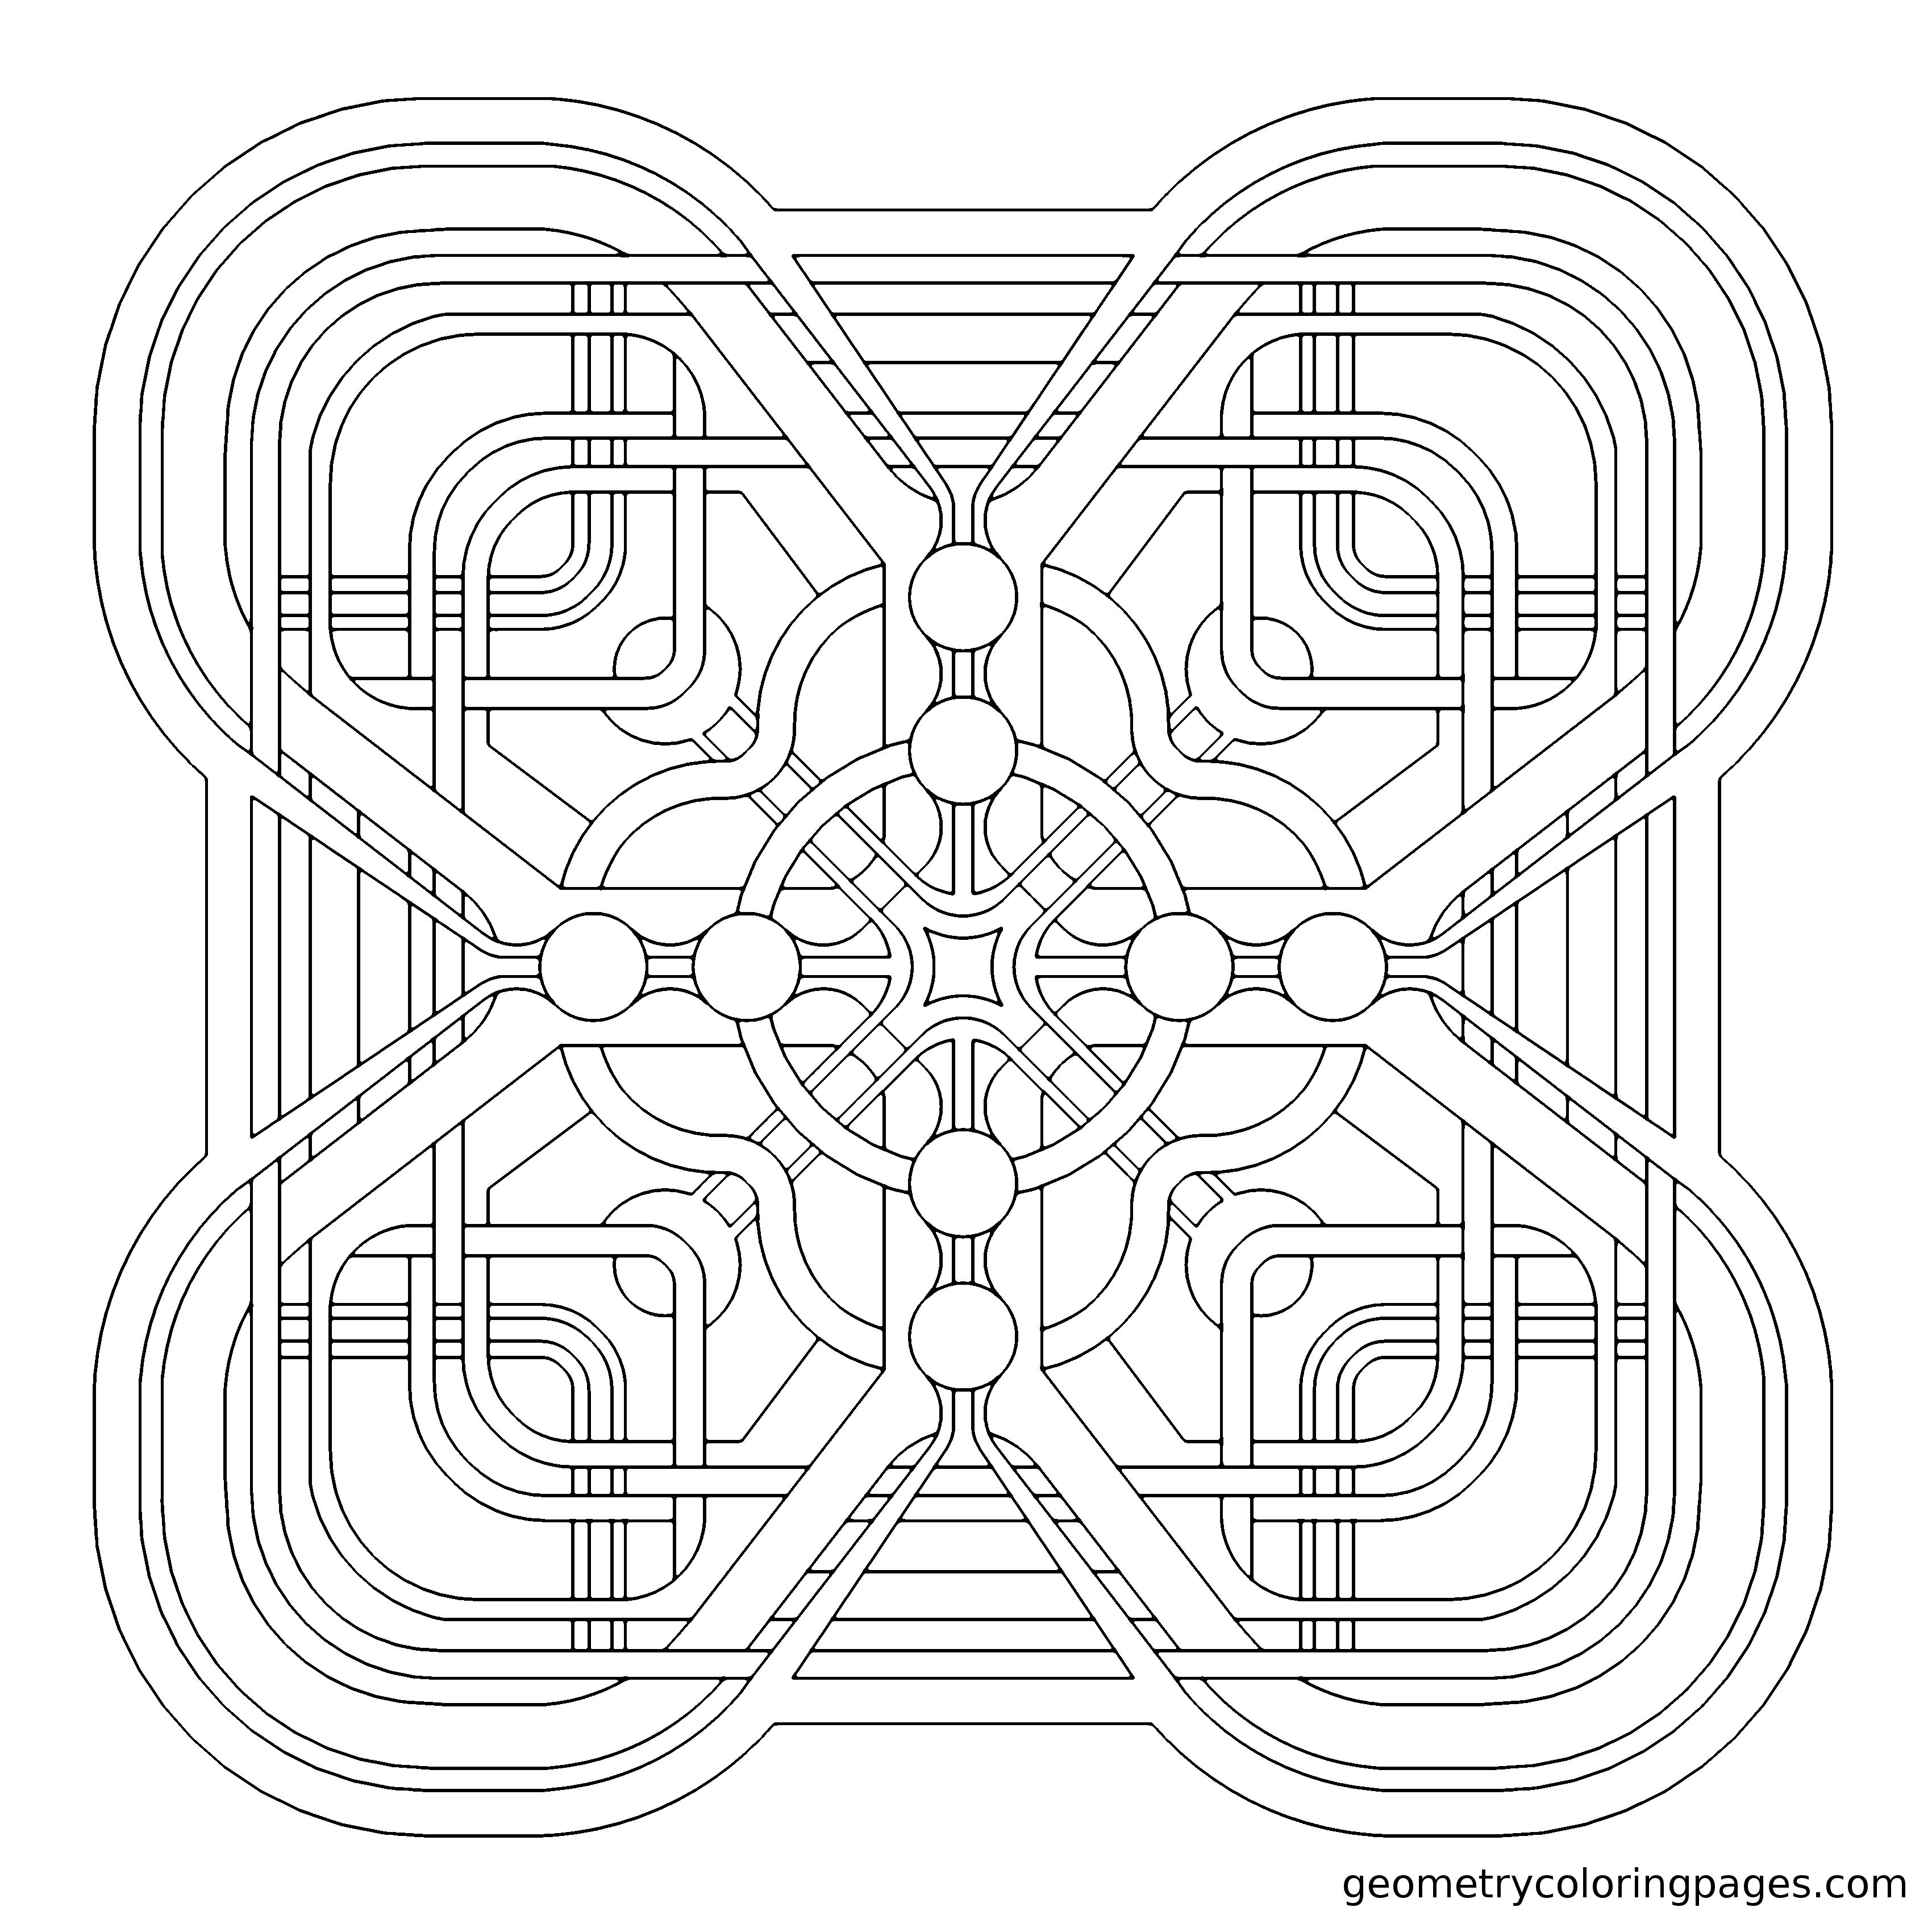 u0026quot circuit iii u0026quot  geometry pattern from geometrycoloringpages